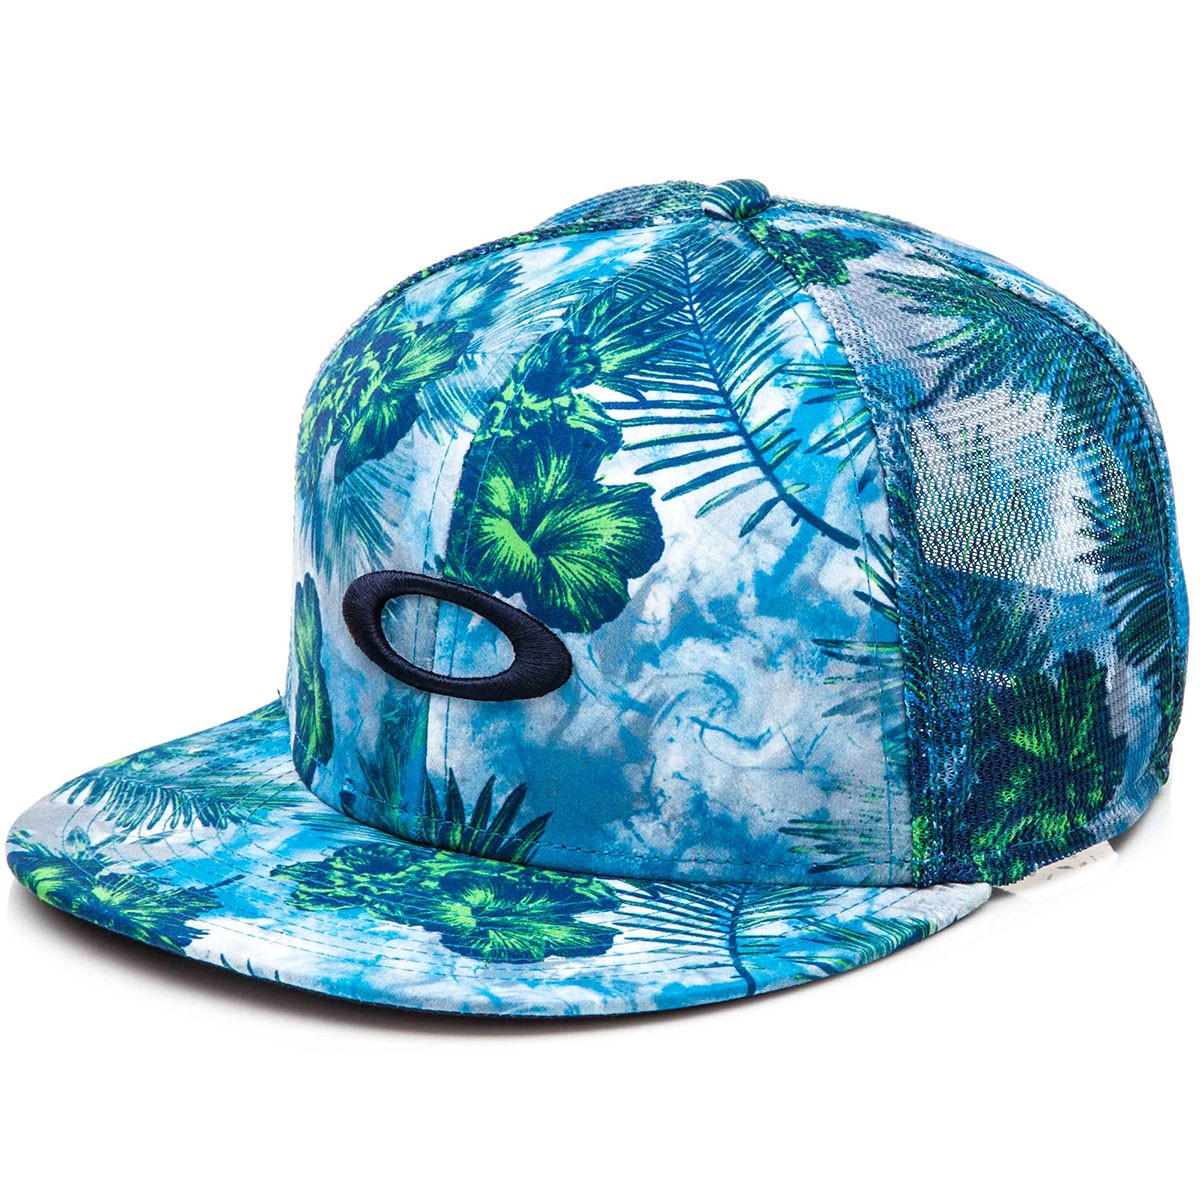 6e05ad725745c0 ... purchase oakley mesh sublimated hat sapphire 3a378 630cd